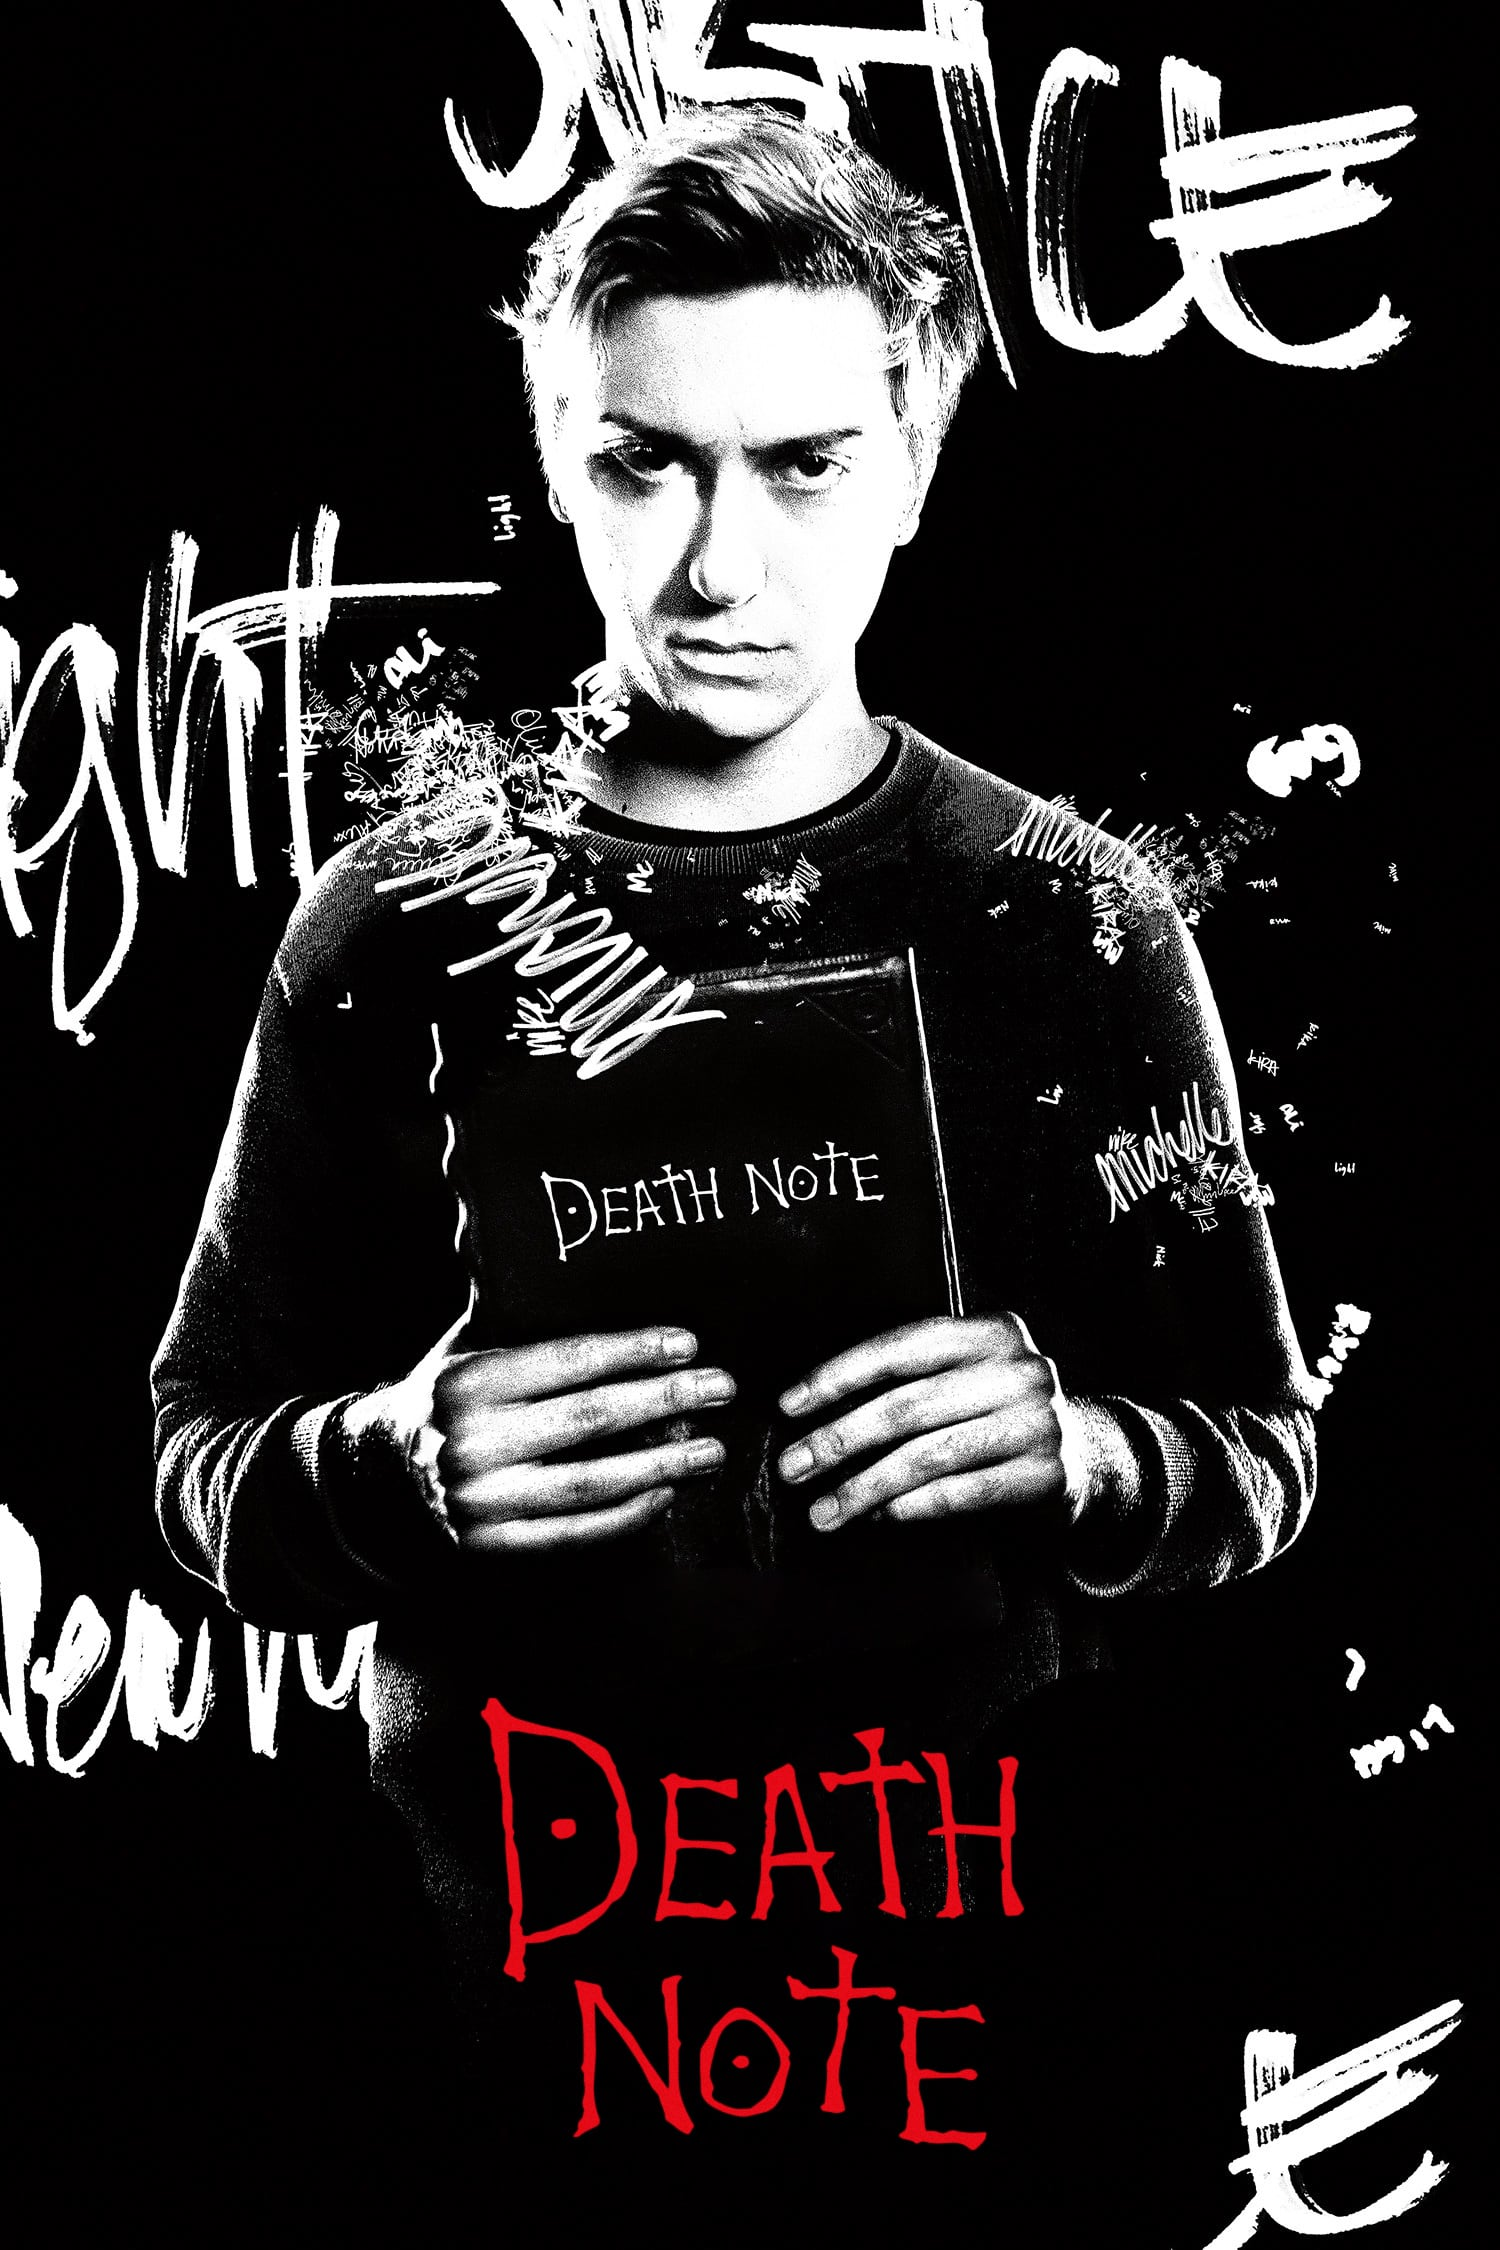 thumb Death Note